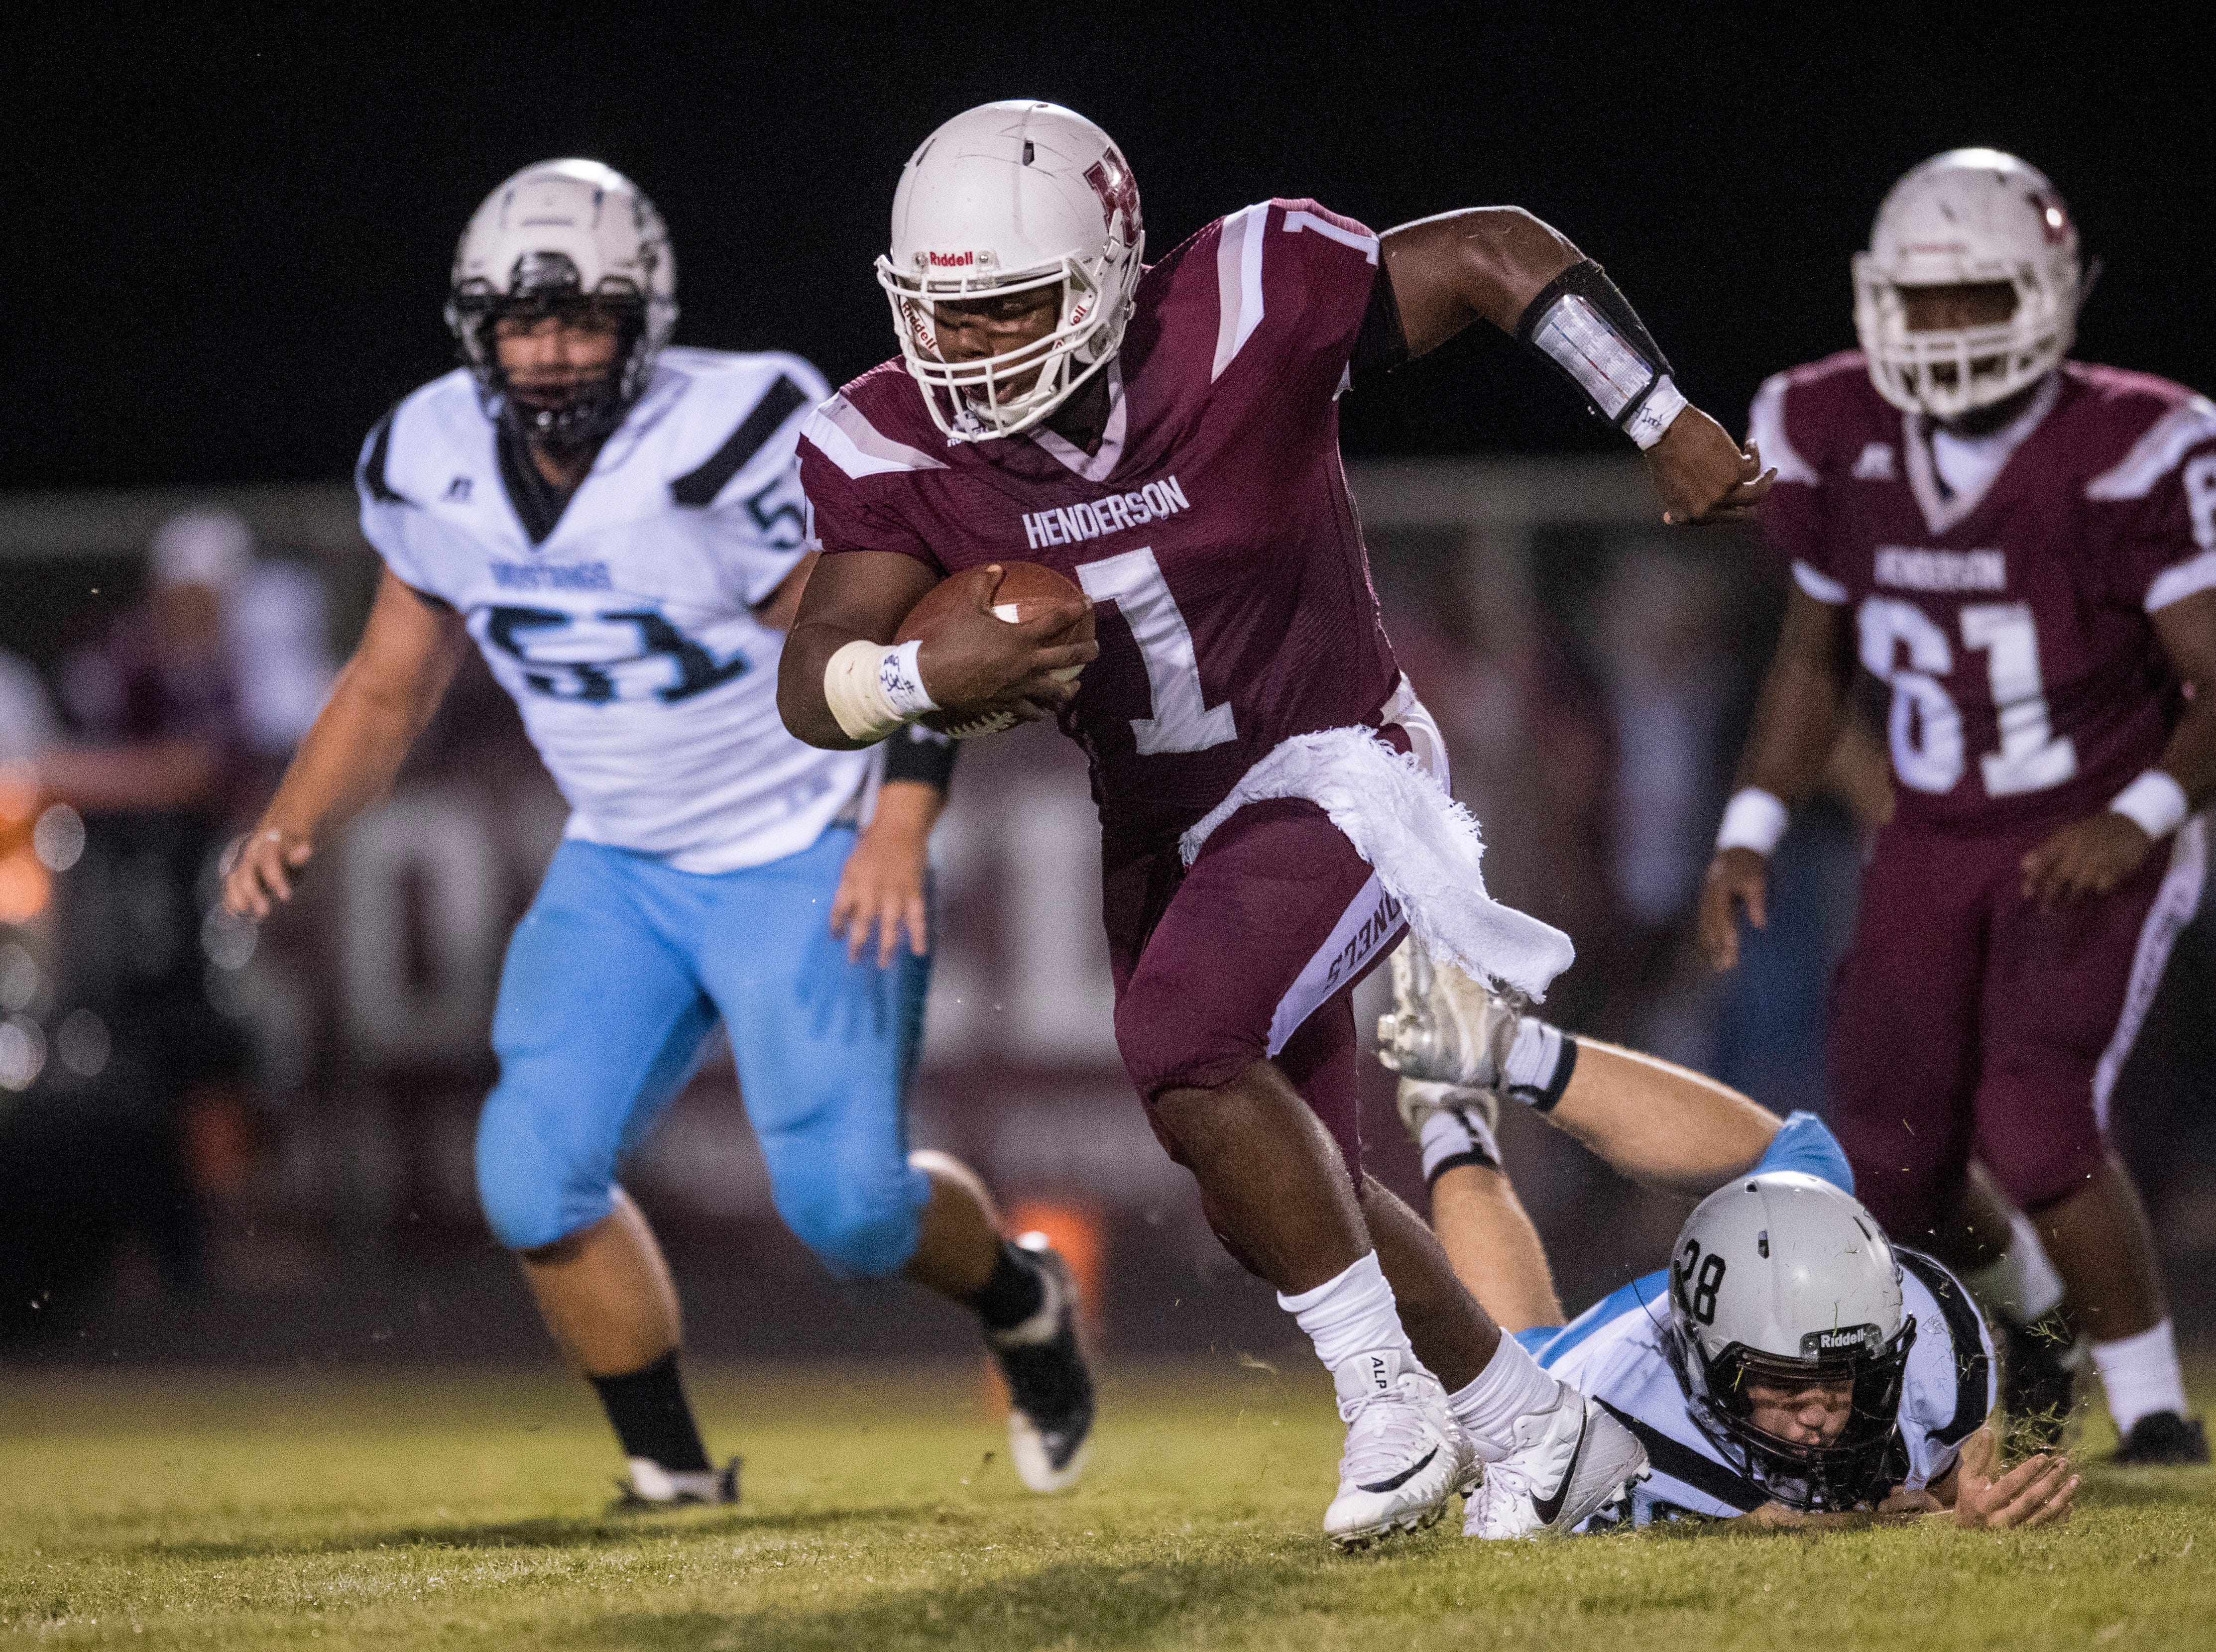 Henderson's Quarterback Skip Patterson (1) carries the ball during the Henderson vs Muhlenberg County game Friday, Sept. 28, 2018. The Henderson County Colonels won, 61-6.